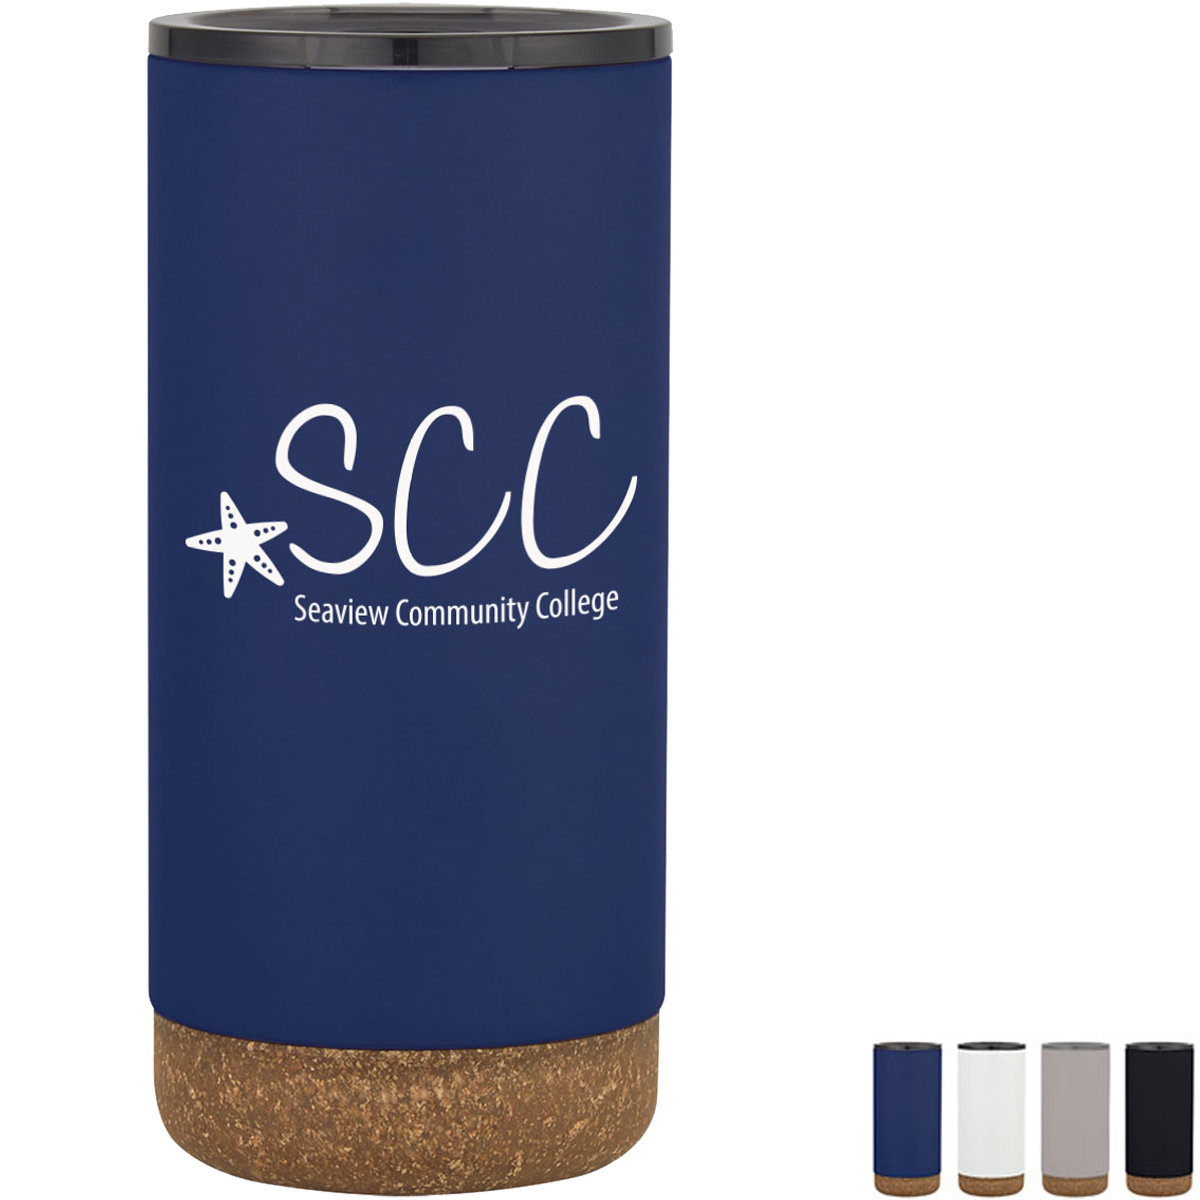 Wellington Stainless Steel Vacuum Insulated Tumbler, 16oz.